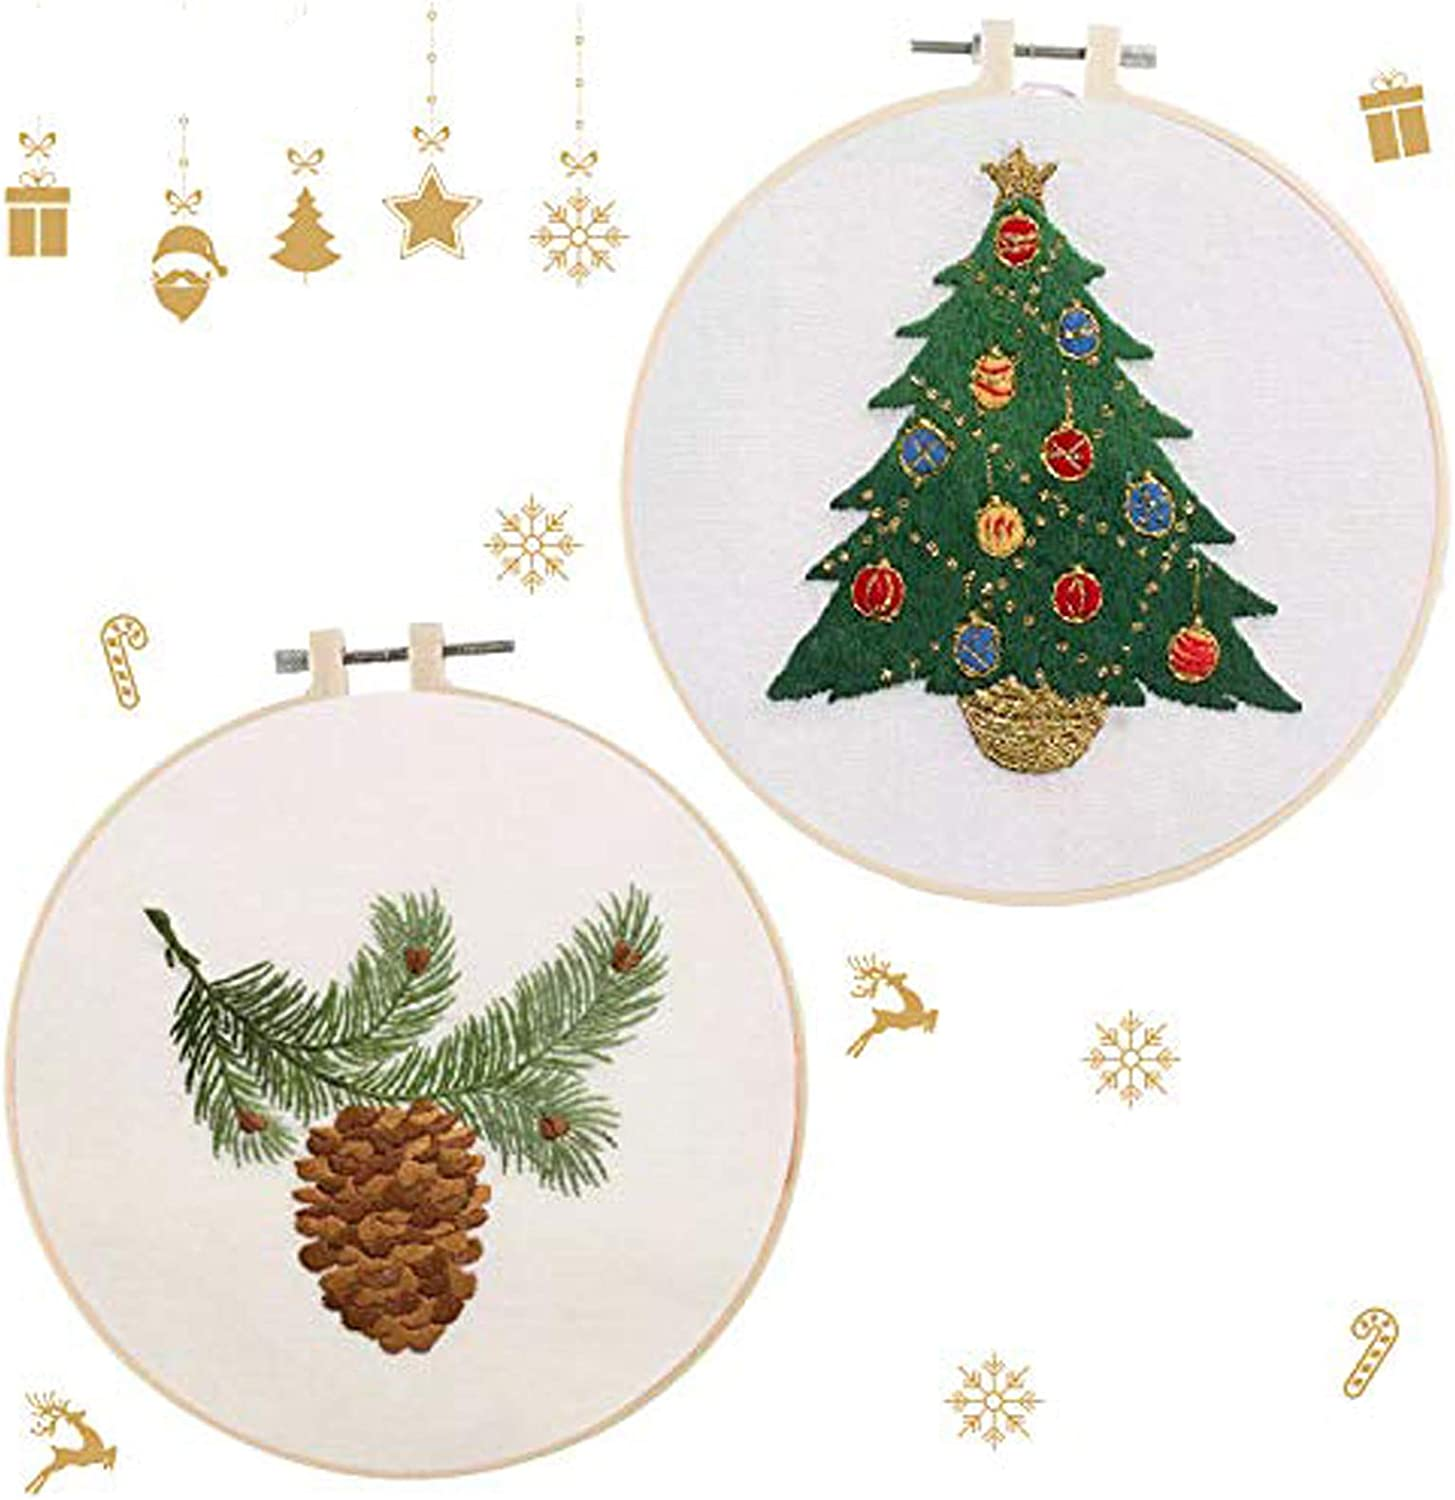 Christmas Embroidery Kit with Enough Tools to Make in English Manual